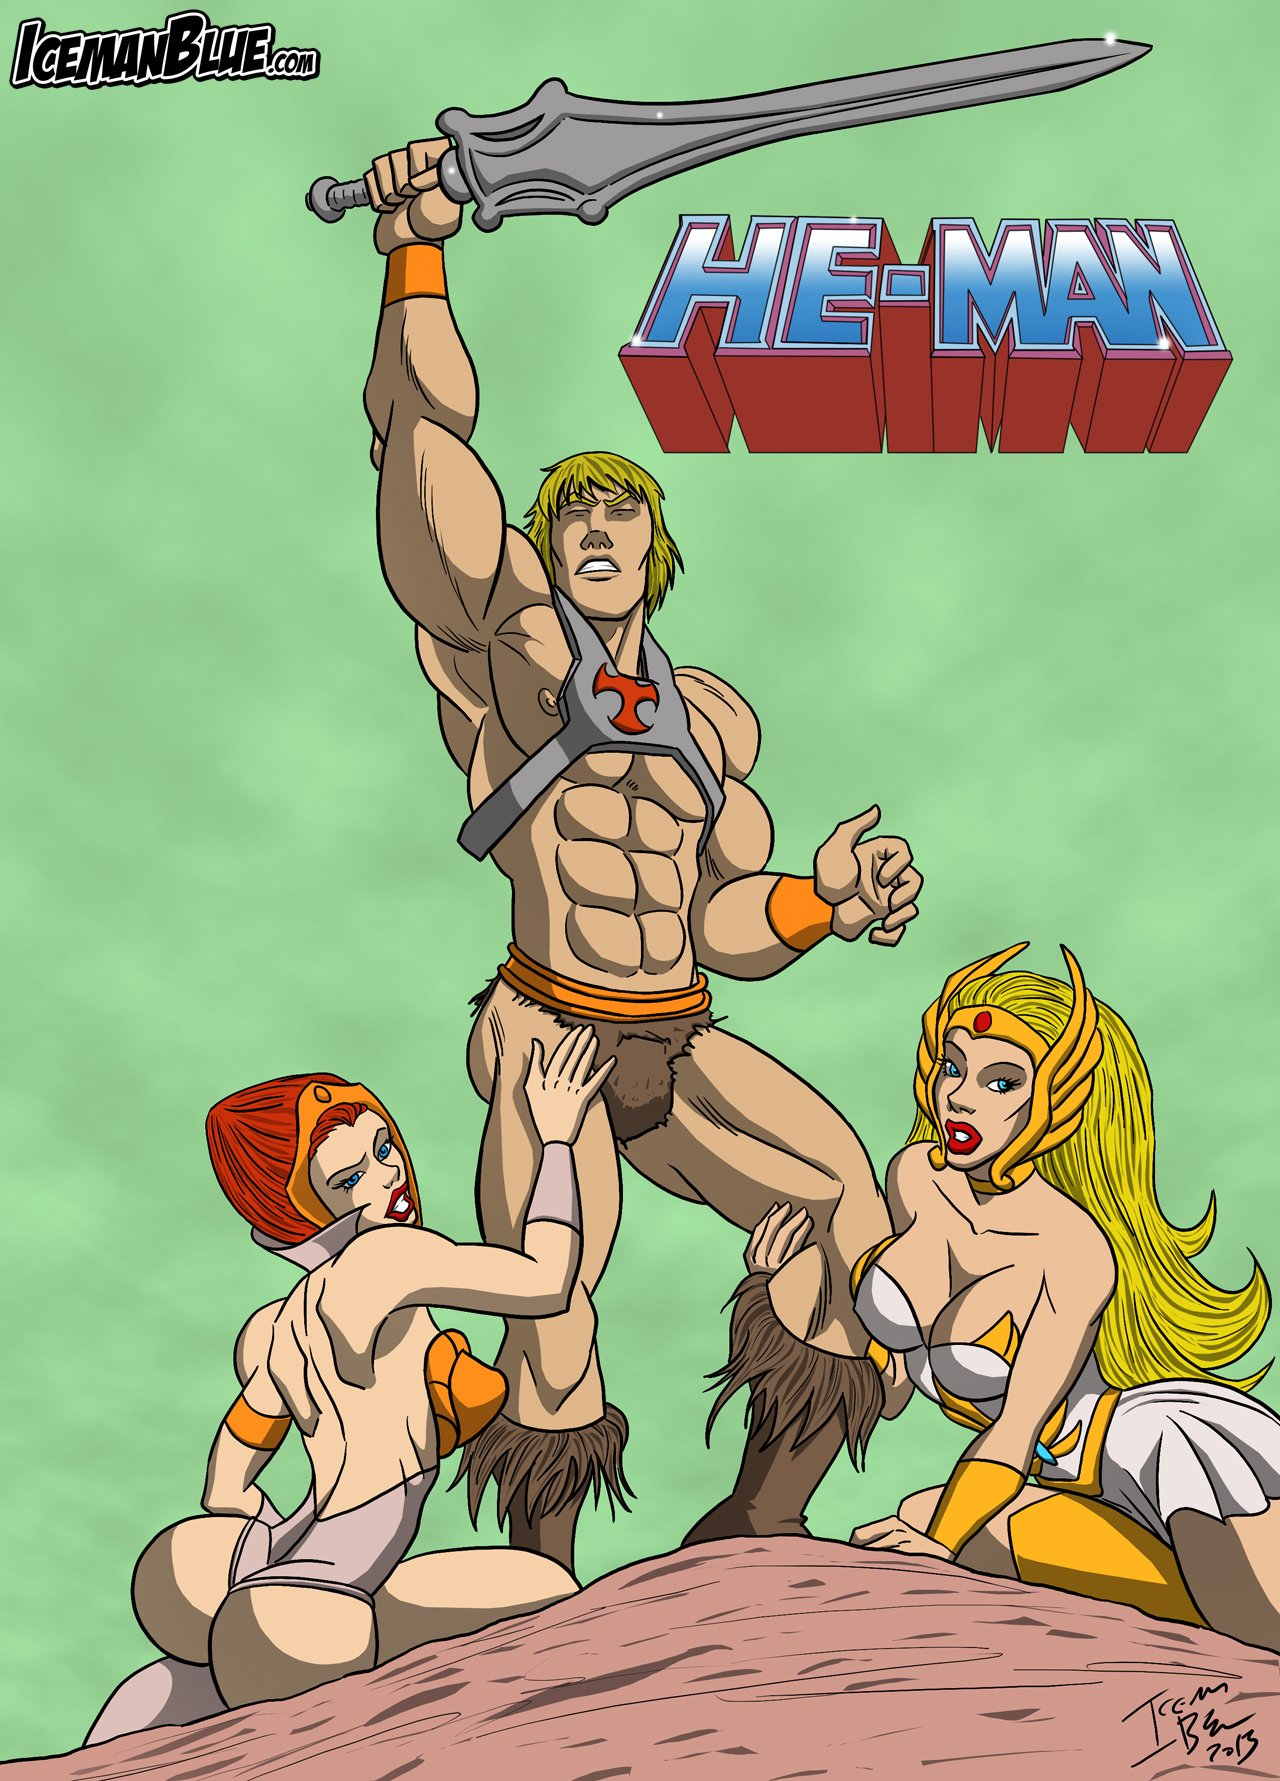 [Iceman Blue] He-Man (He-Man and the Masters of the Universe)